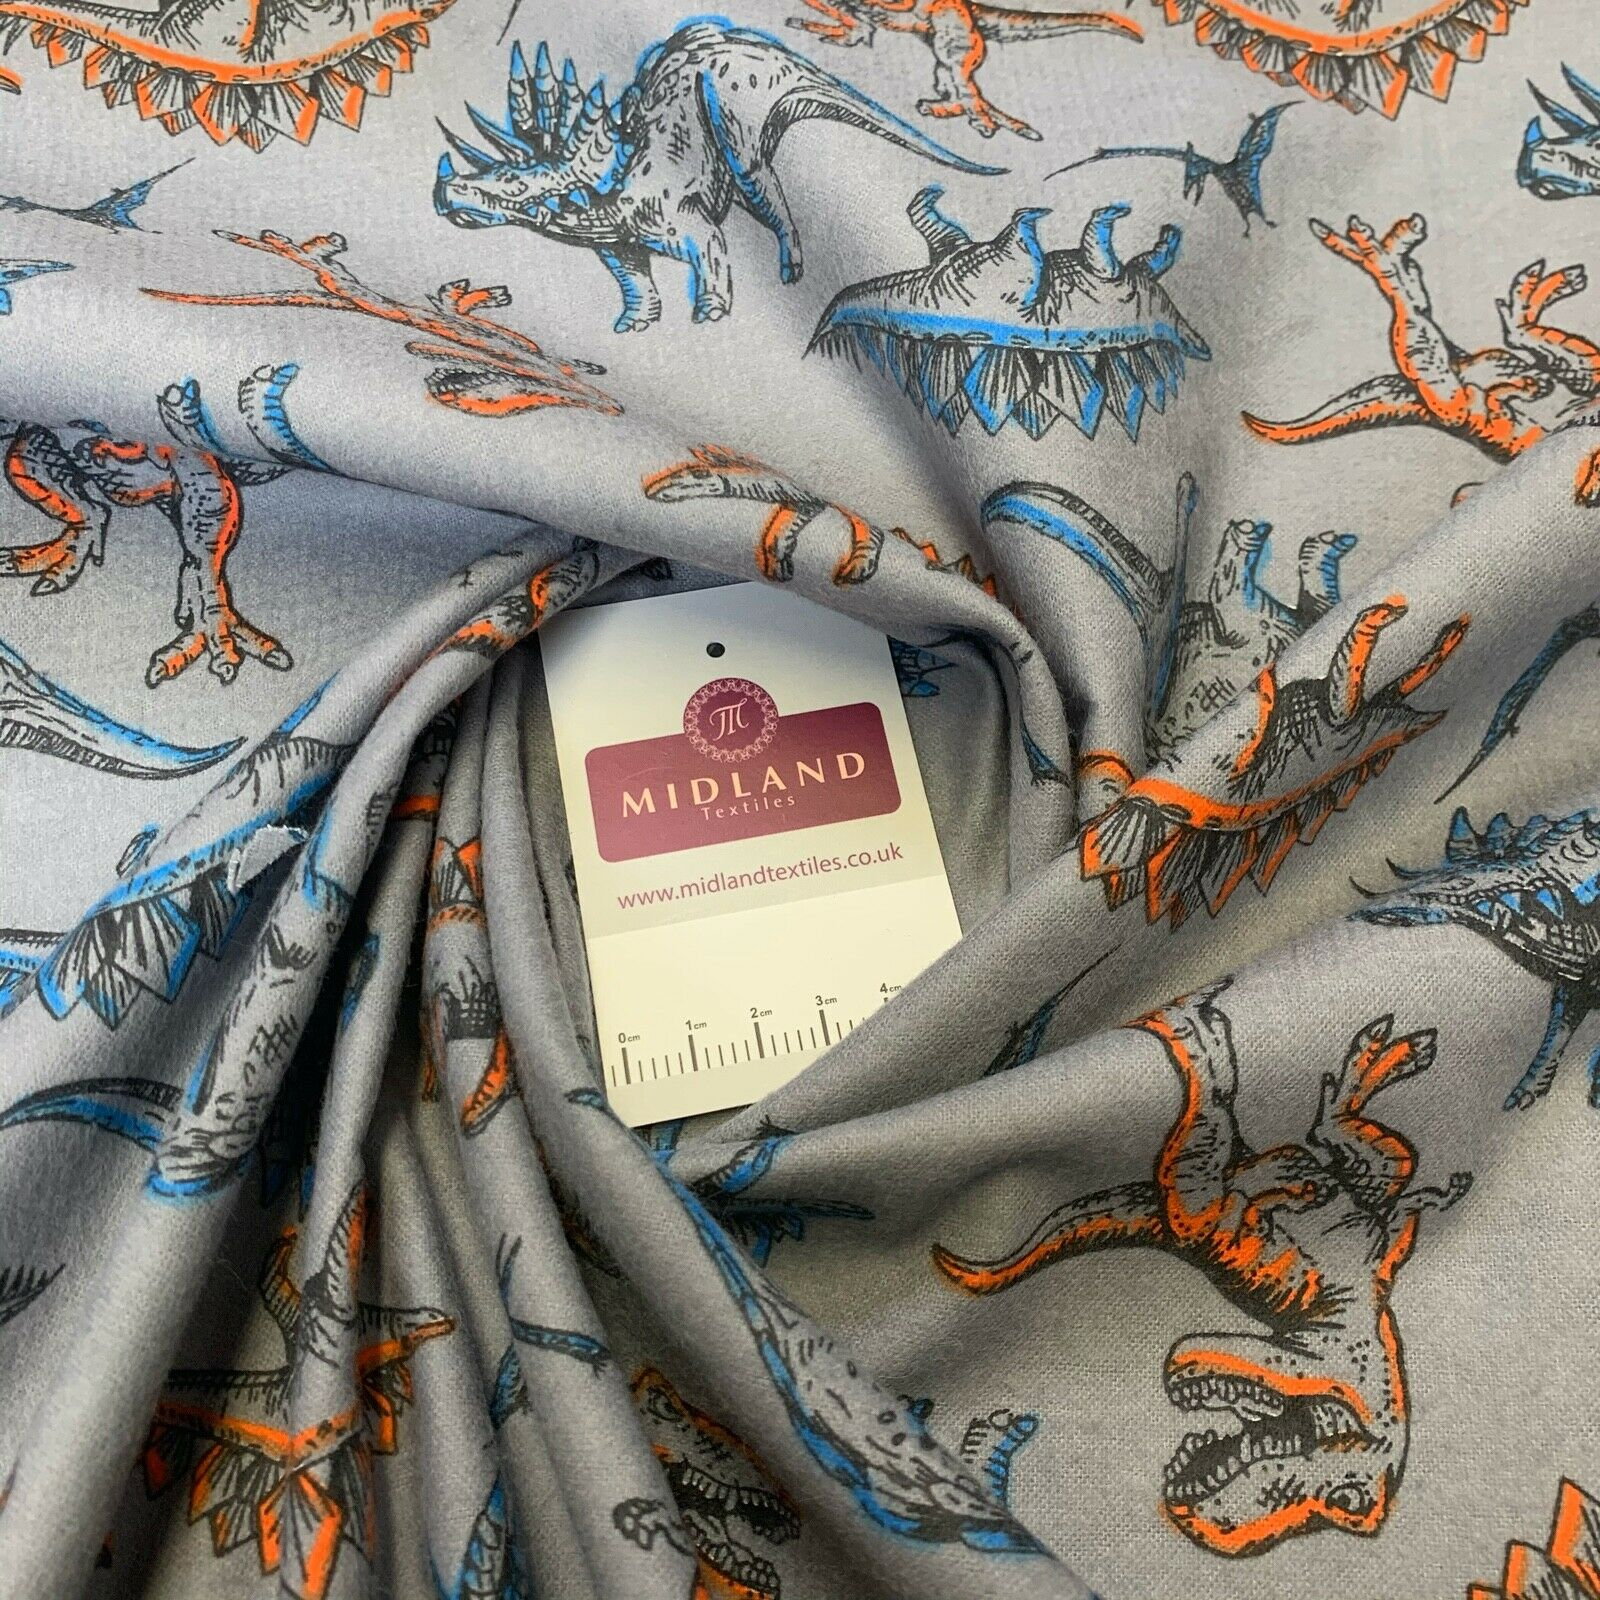 Grey Dinosaur Cotton Wynciette Soft Brushed Fabric 110 cm Wide MK1227-12